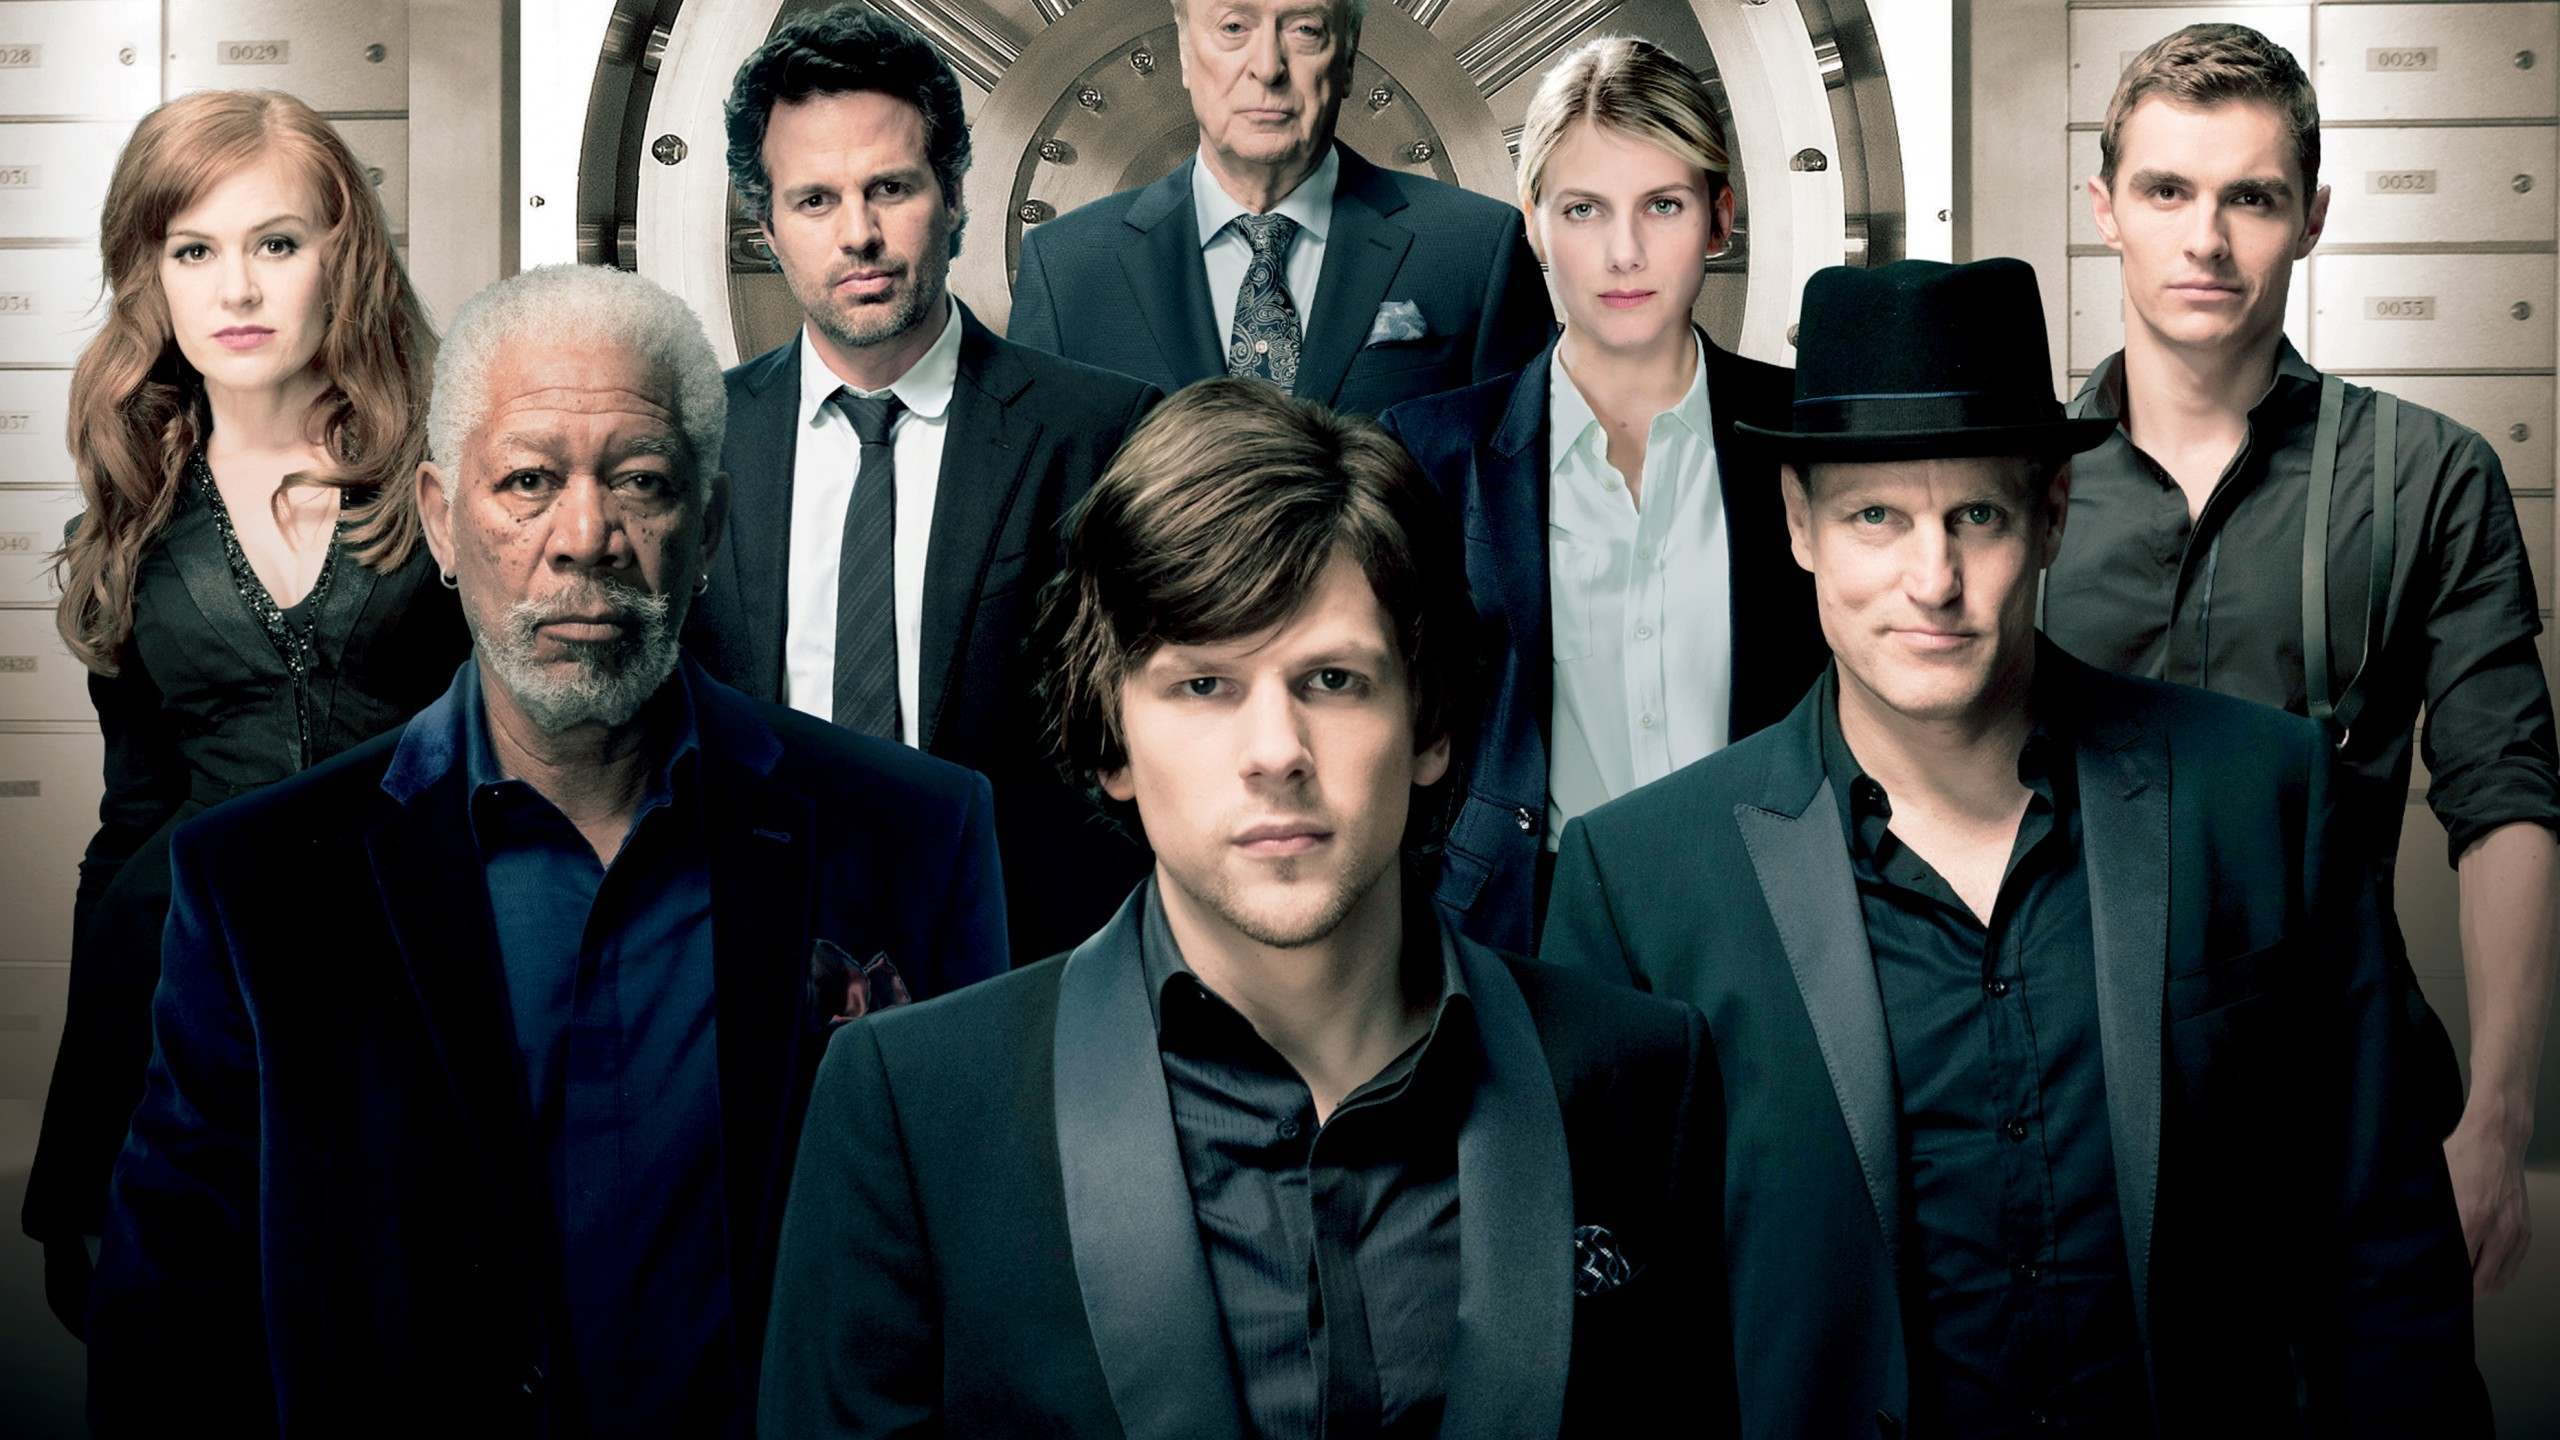 Wallpaper Now You See Me 2 Jesse Eisenberg Woody Harrelson Dave